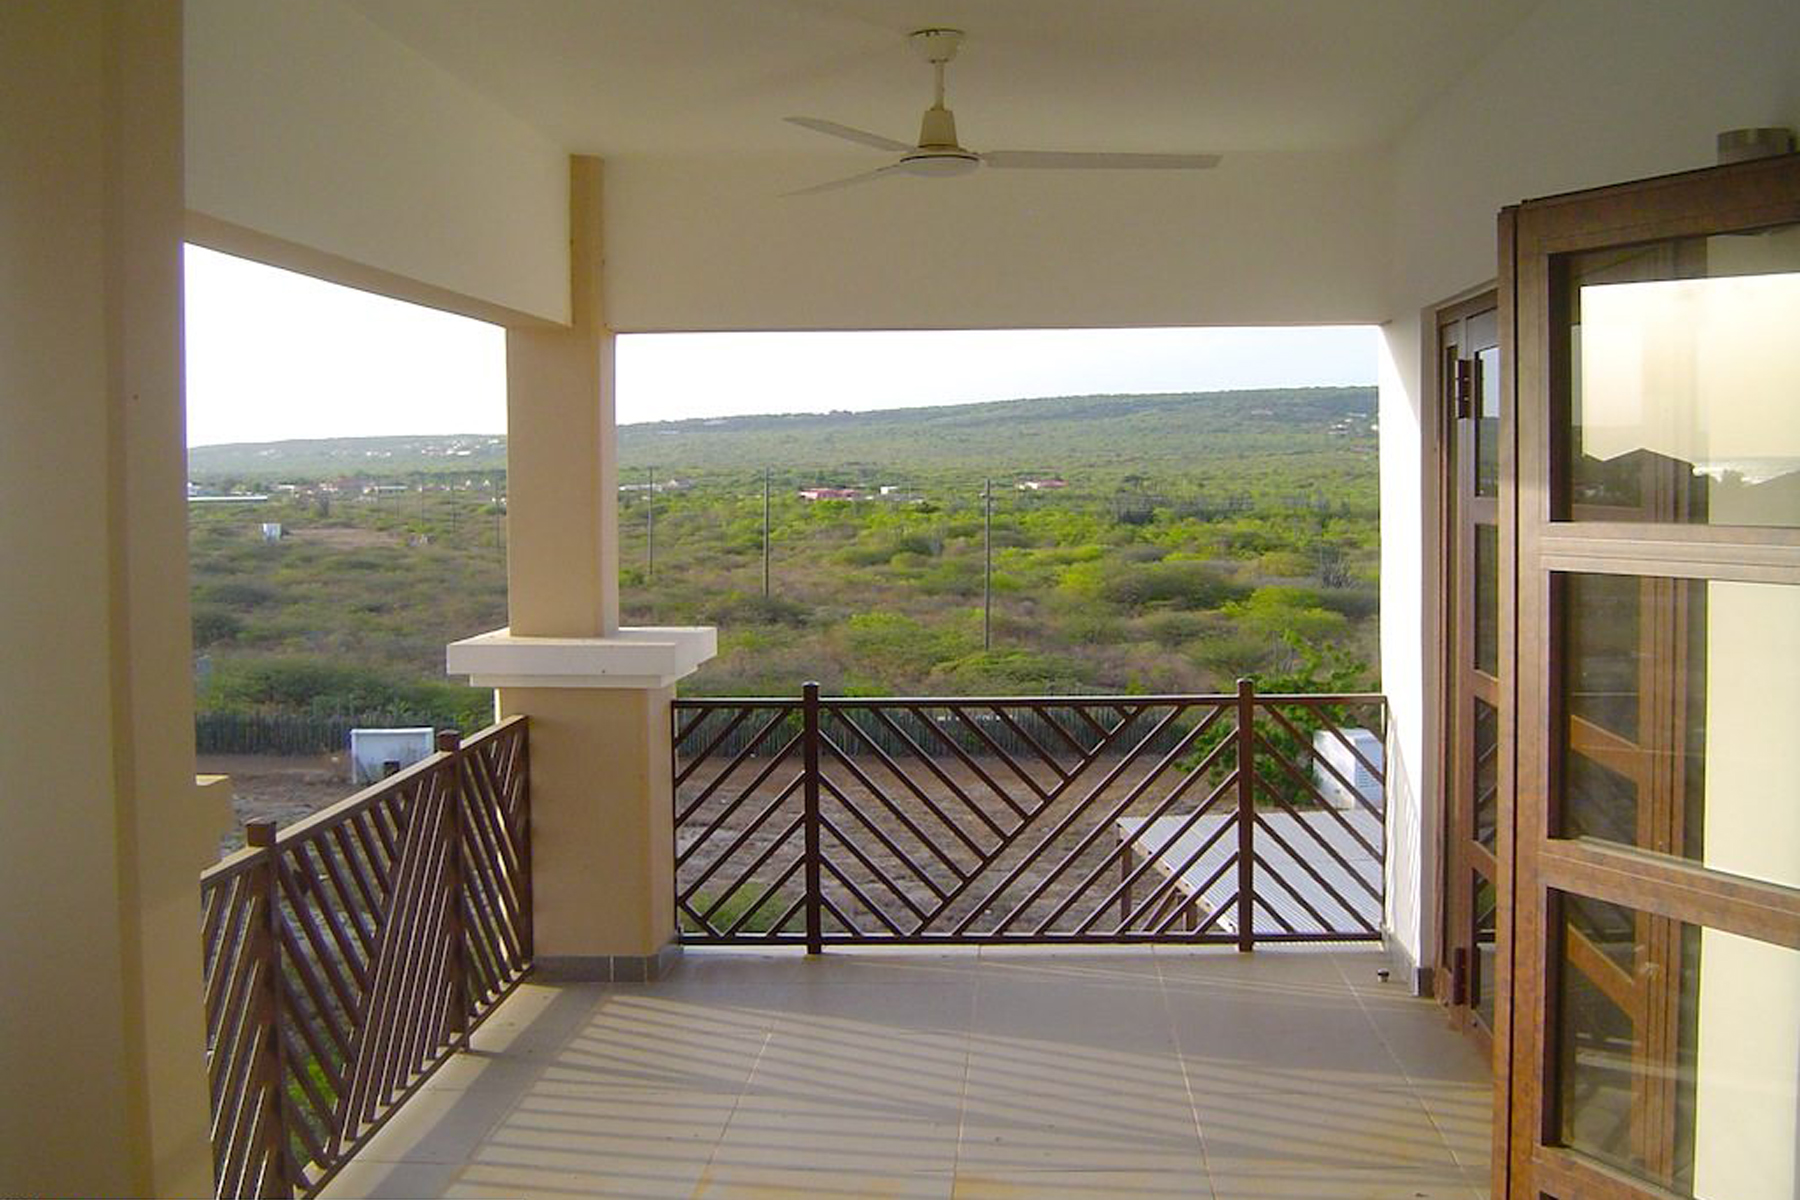 Single Family Home for Sale at The Penthouse Hato in Kralendijk Kralendijk, Bonaire